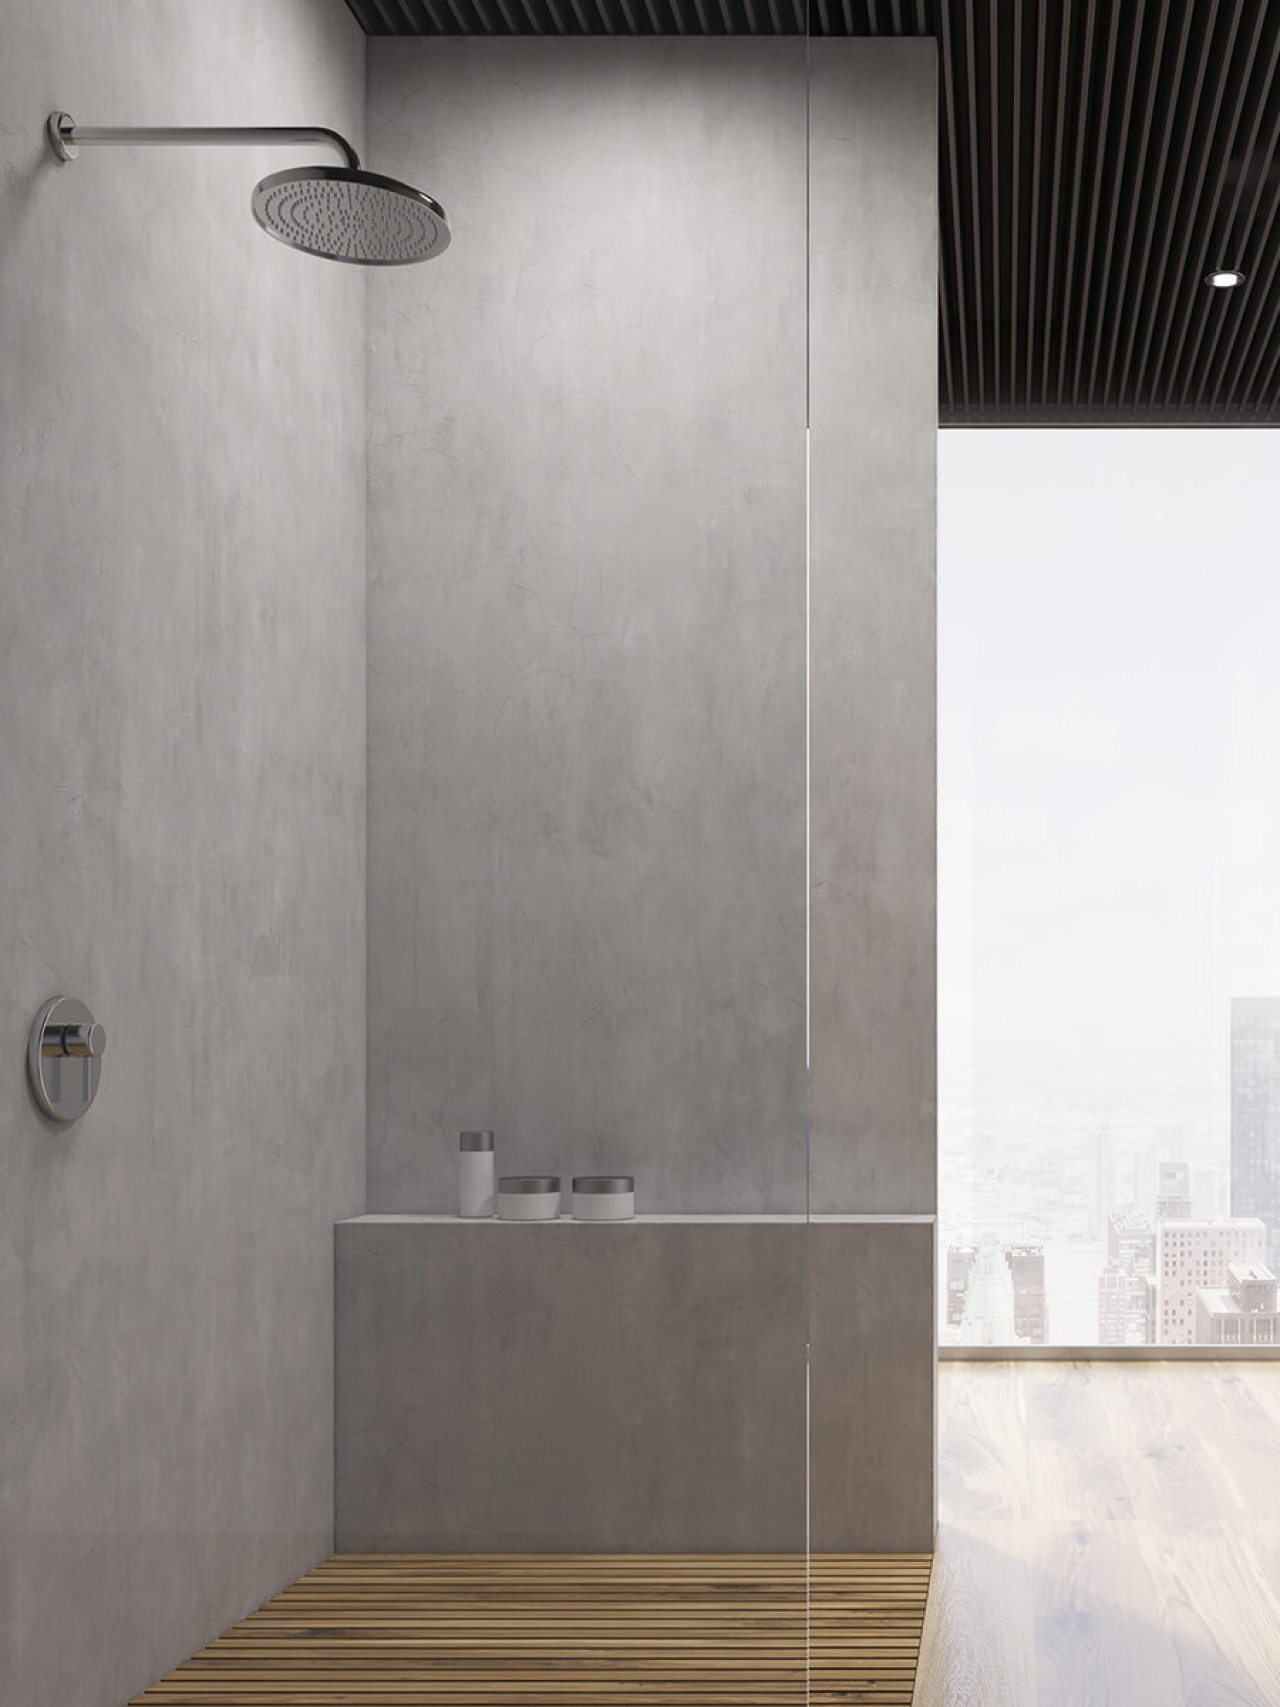 Innovative surface designs for showers in the latest urban concrete look